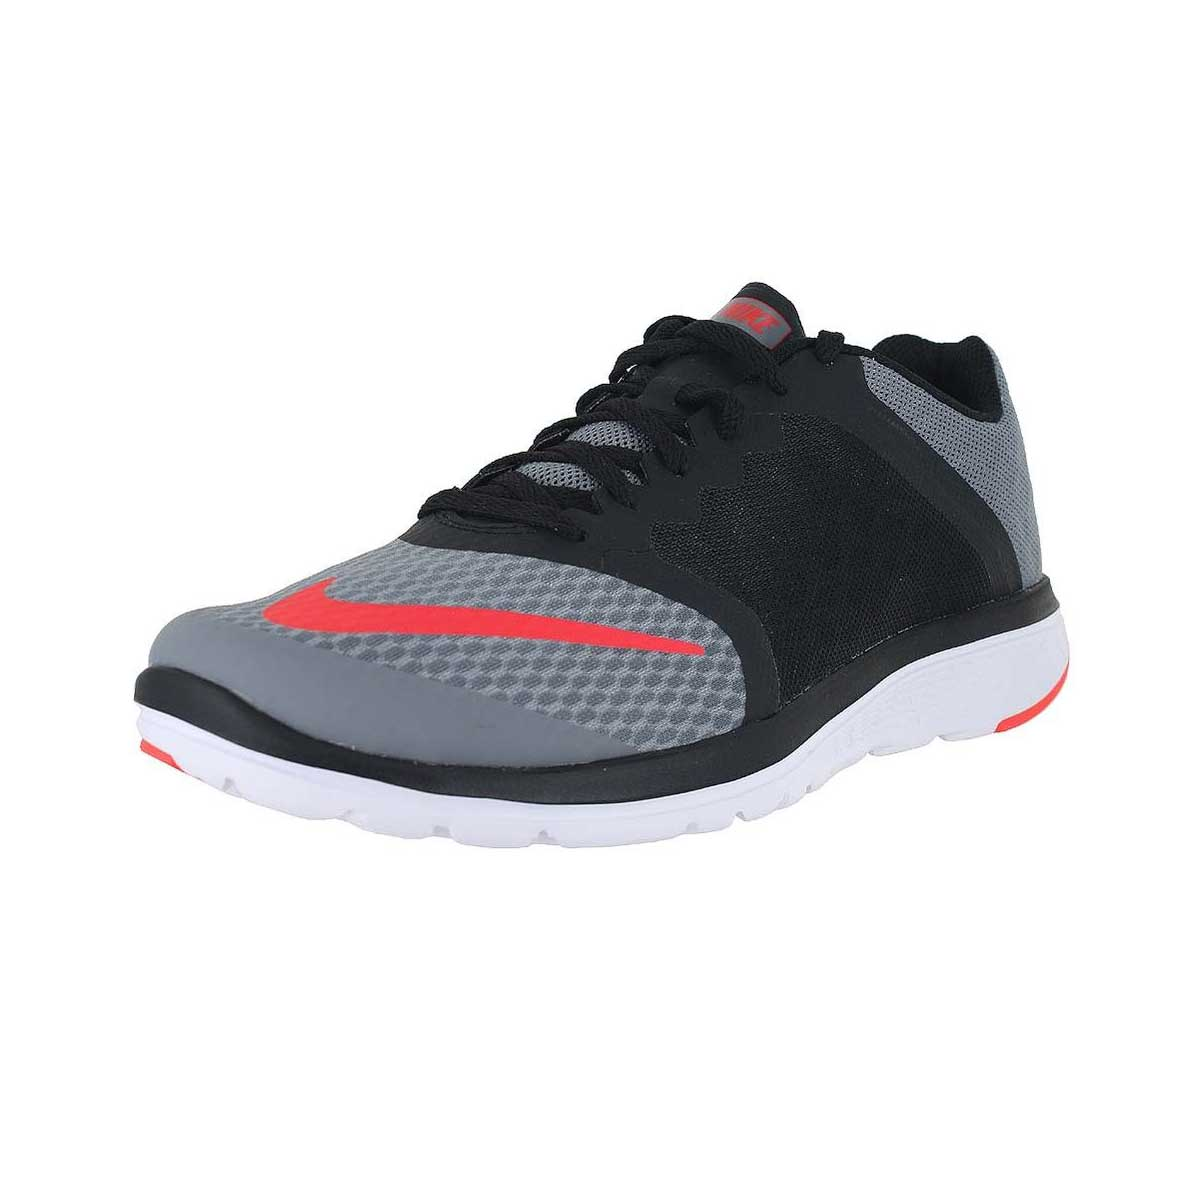 Running Shoes, Running, Buy, Nike, Nike FS Lite 3 Running Shoes (Black /Grey/Red)